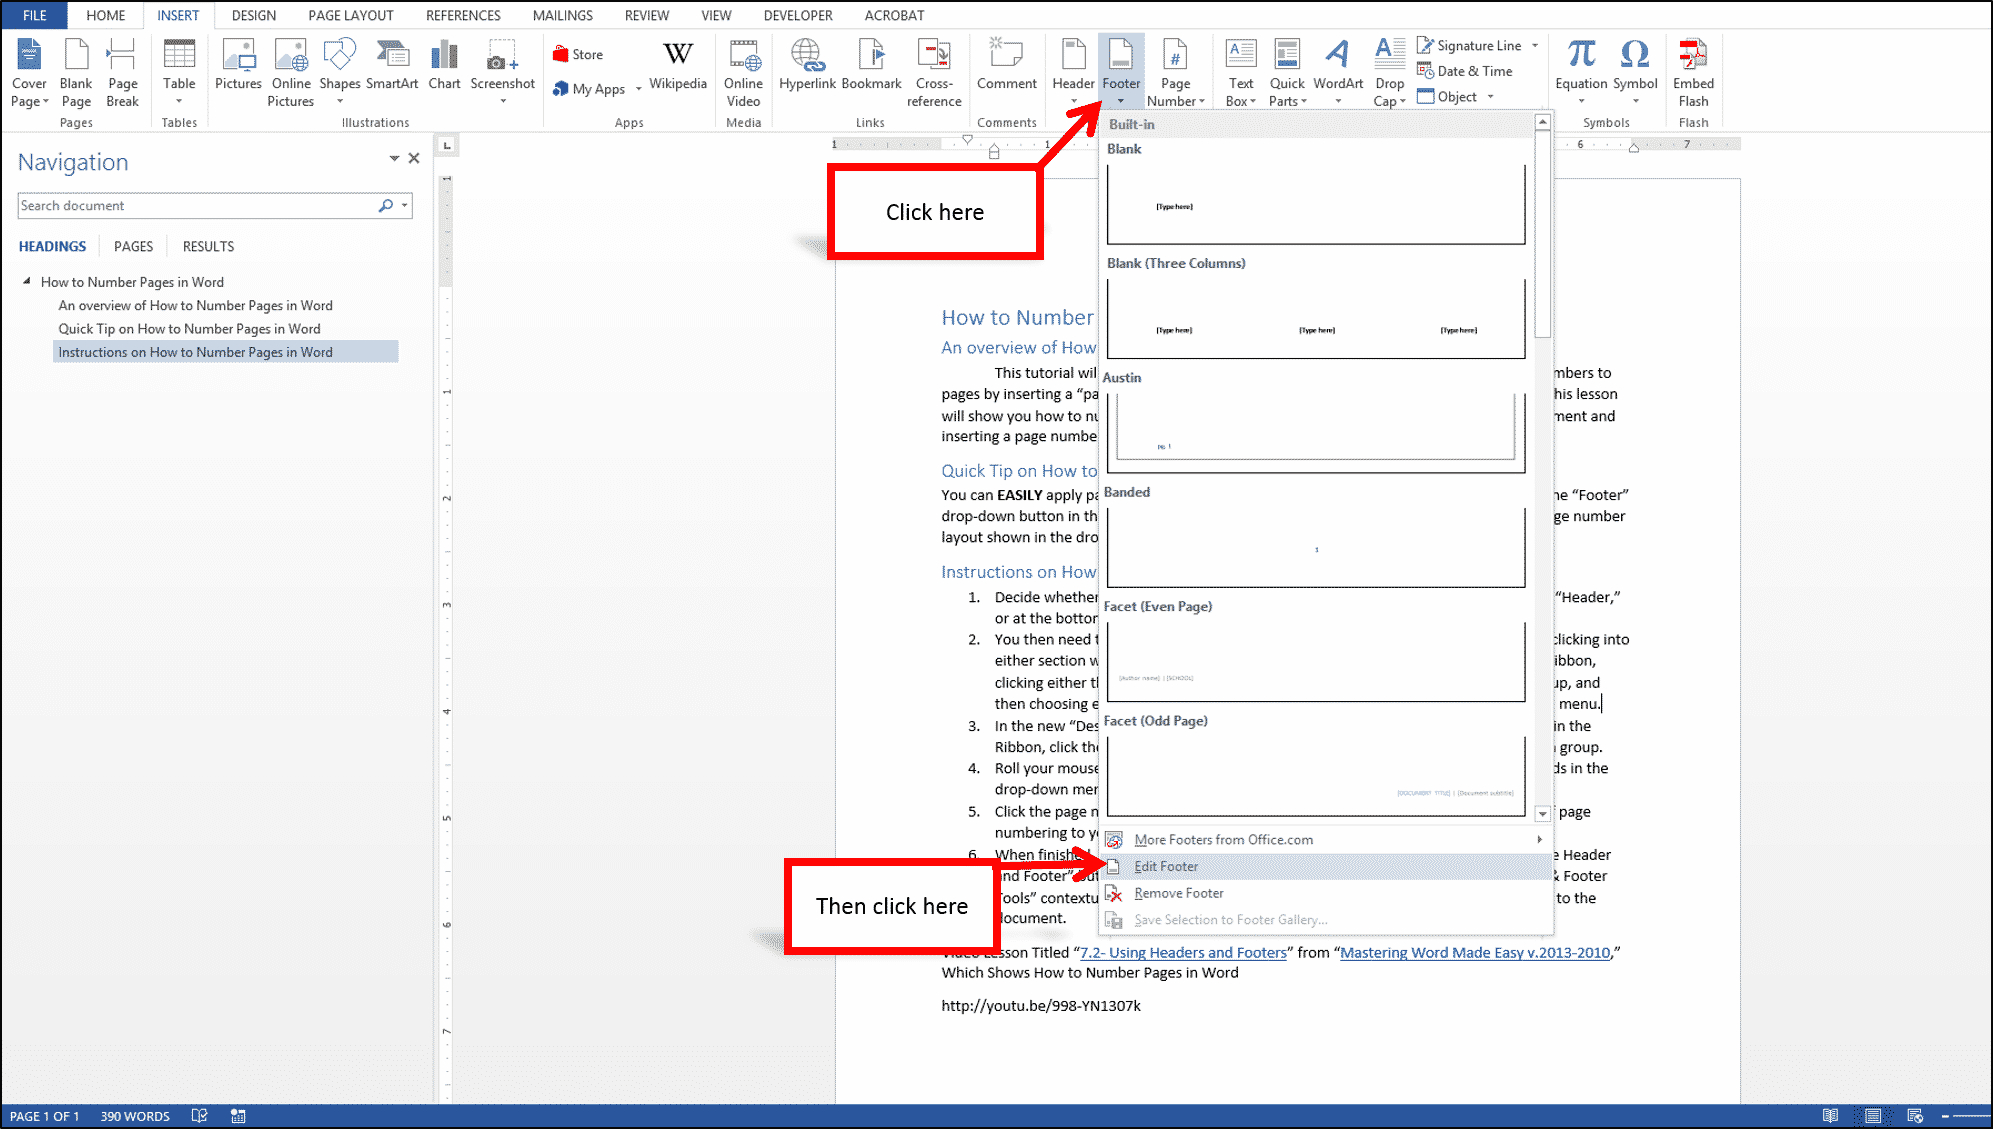 "How to Number Pages in Word: Step #2- You then need to edit the content of either the ""Header"" or the ""Footer"" by double-clicking into either section when using the ""Print Layout"" view or clicking the ""Insert"" tab in the Ribbon, clicking either the ""Header"" or ""Footer"" button in the ""Header & Footer"" button group, and then choosing either the ""Edit Header"" or ""Edit Footer"" buttons from the drop-down menu."